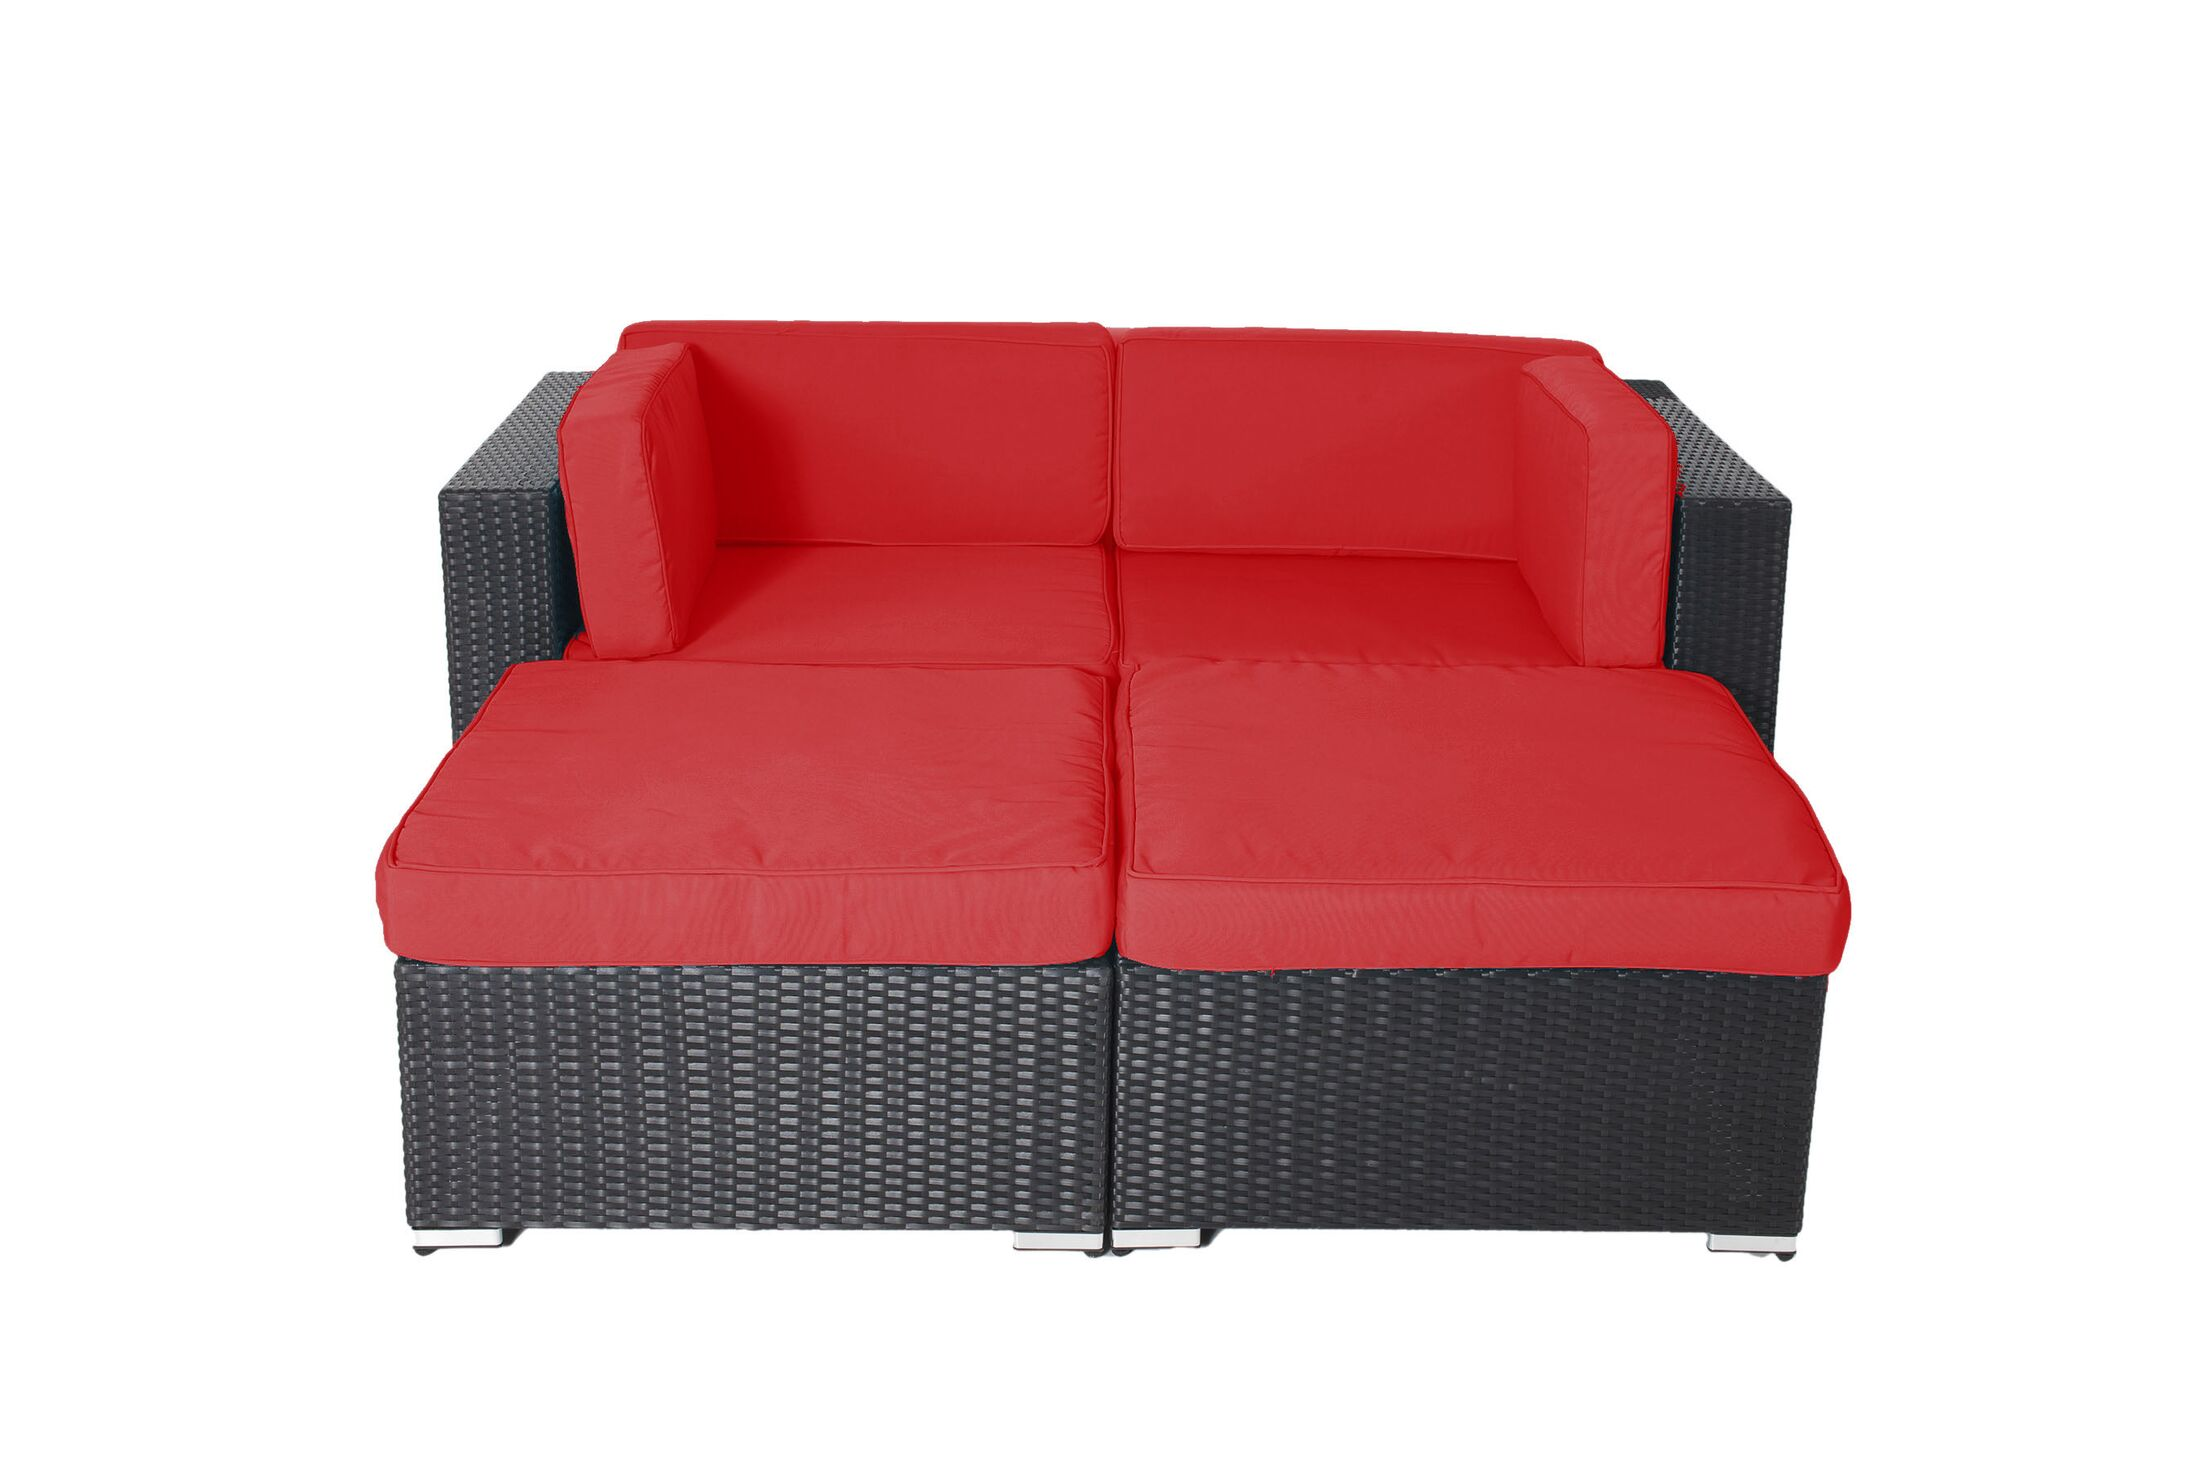 Hibner 4 Piece Rattan Conversation Set with Cushions Fabric: Red